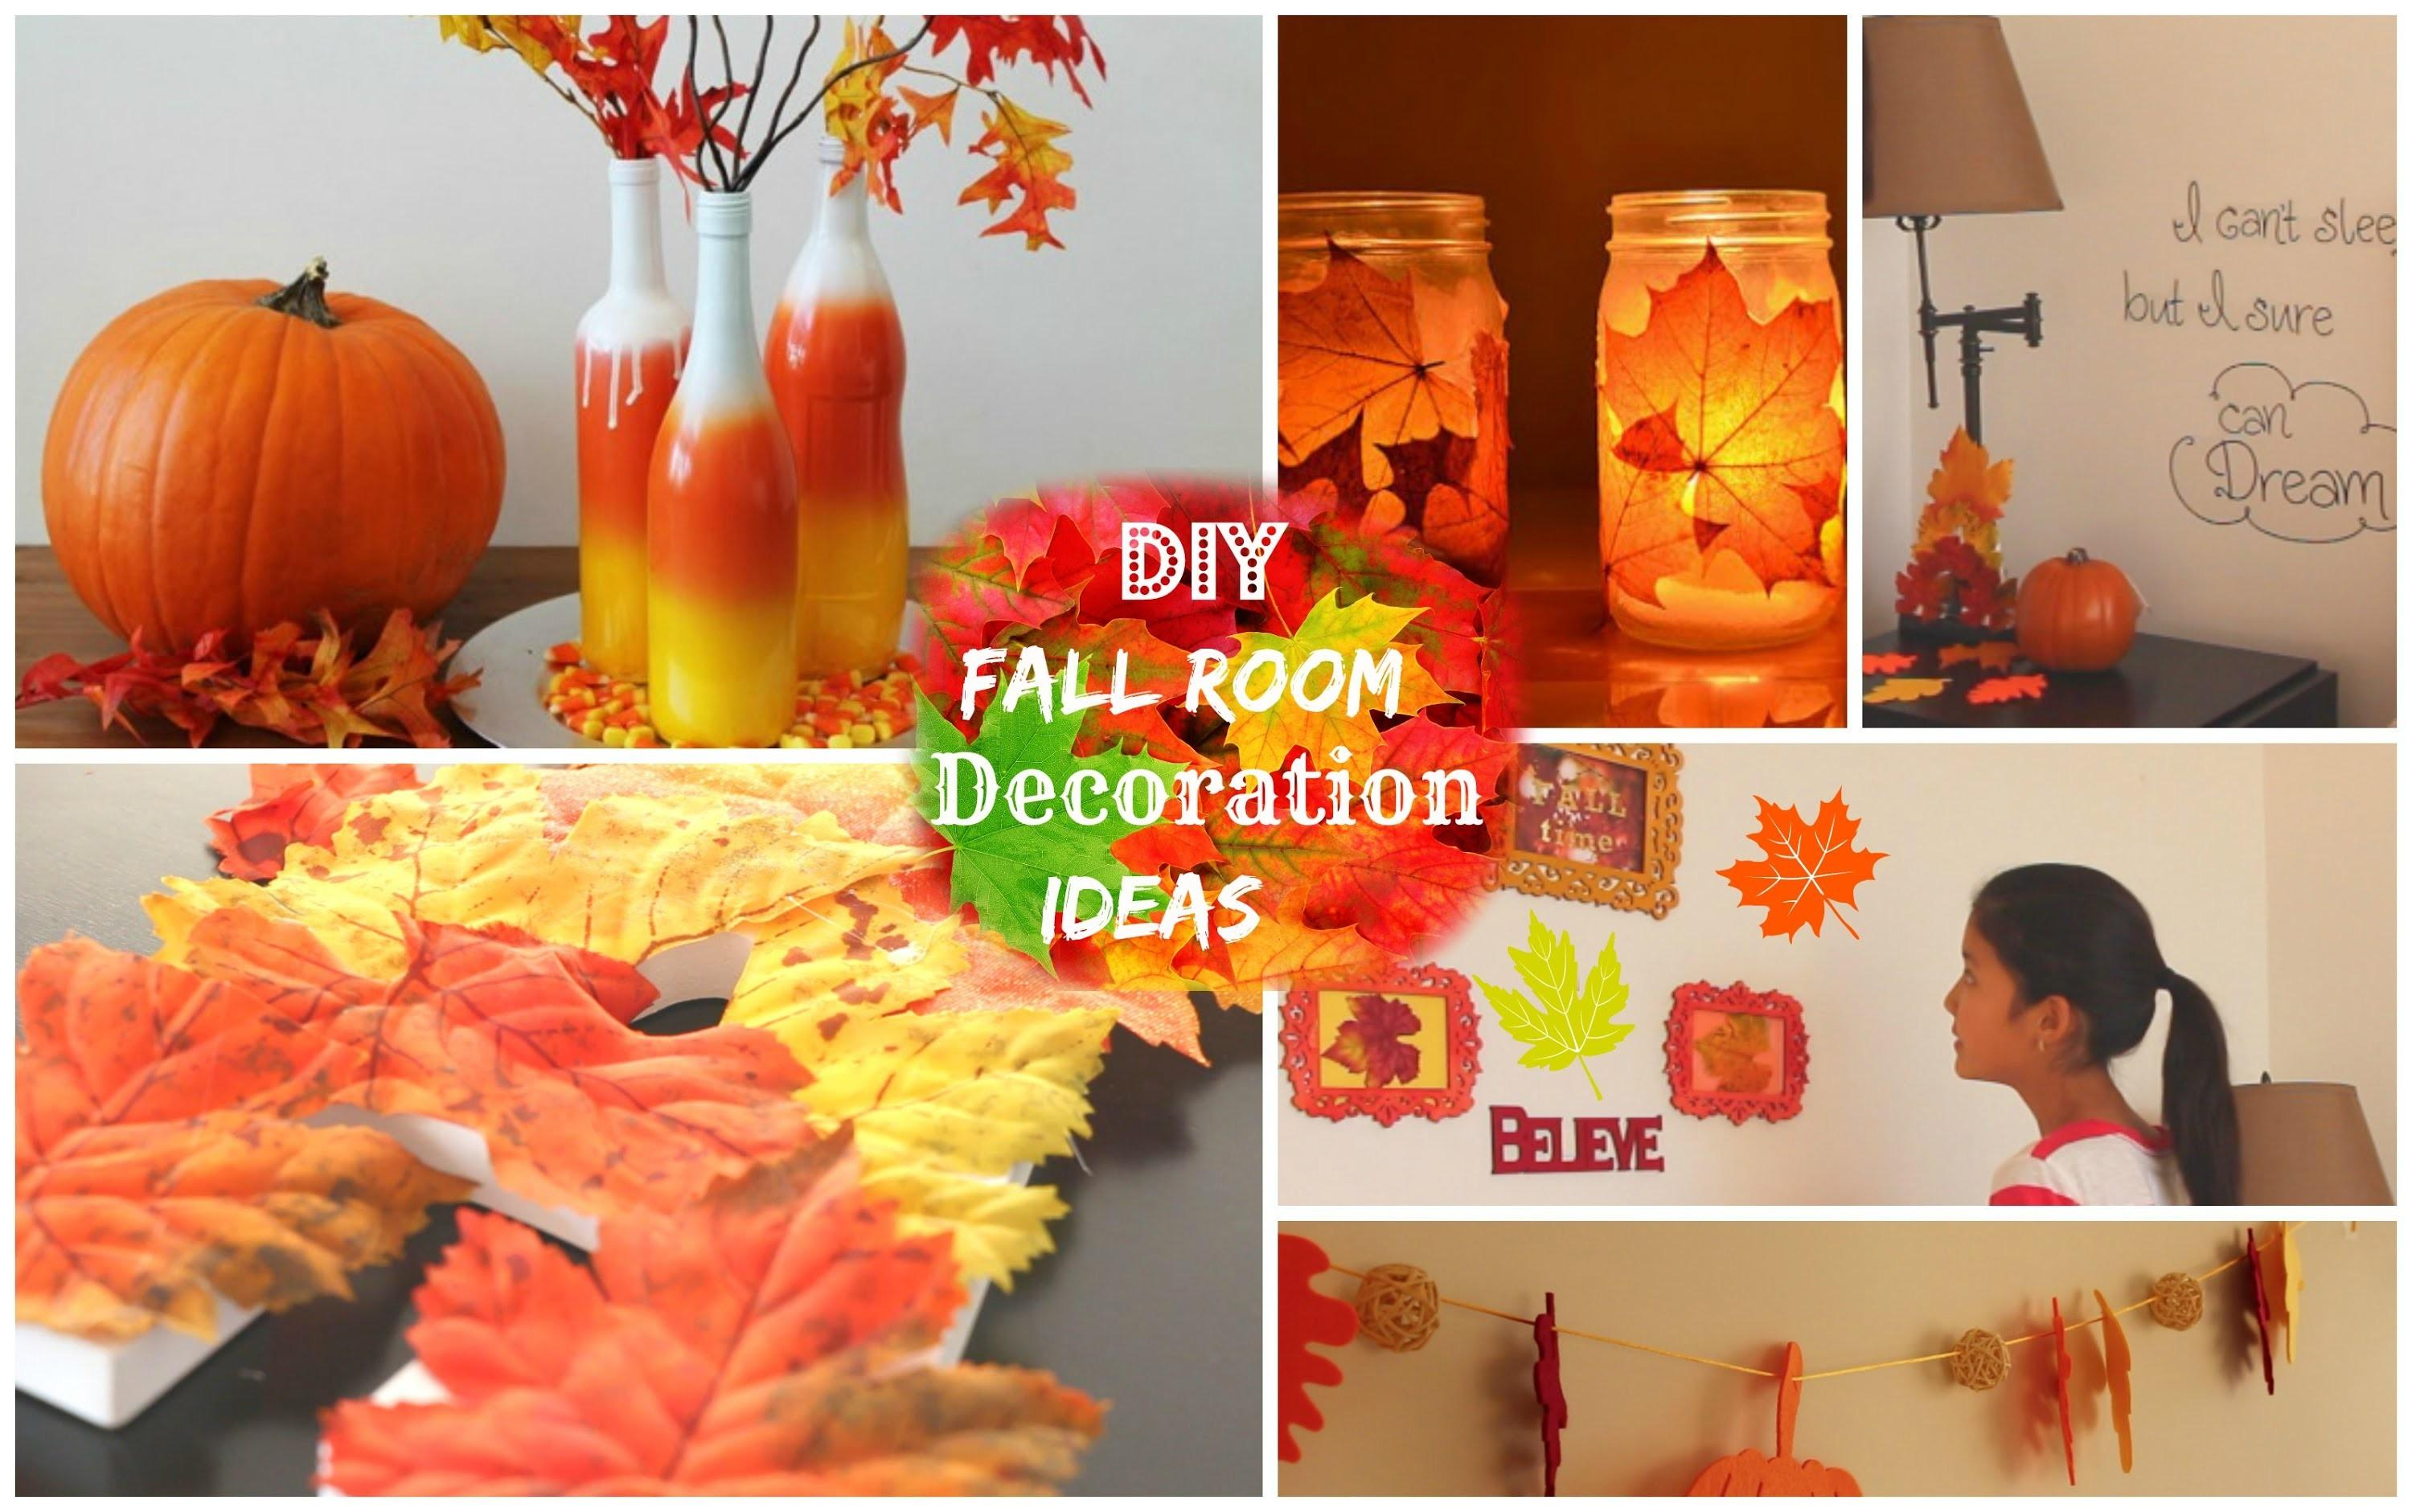 Diy Fall Room Decoration Ideas 2014